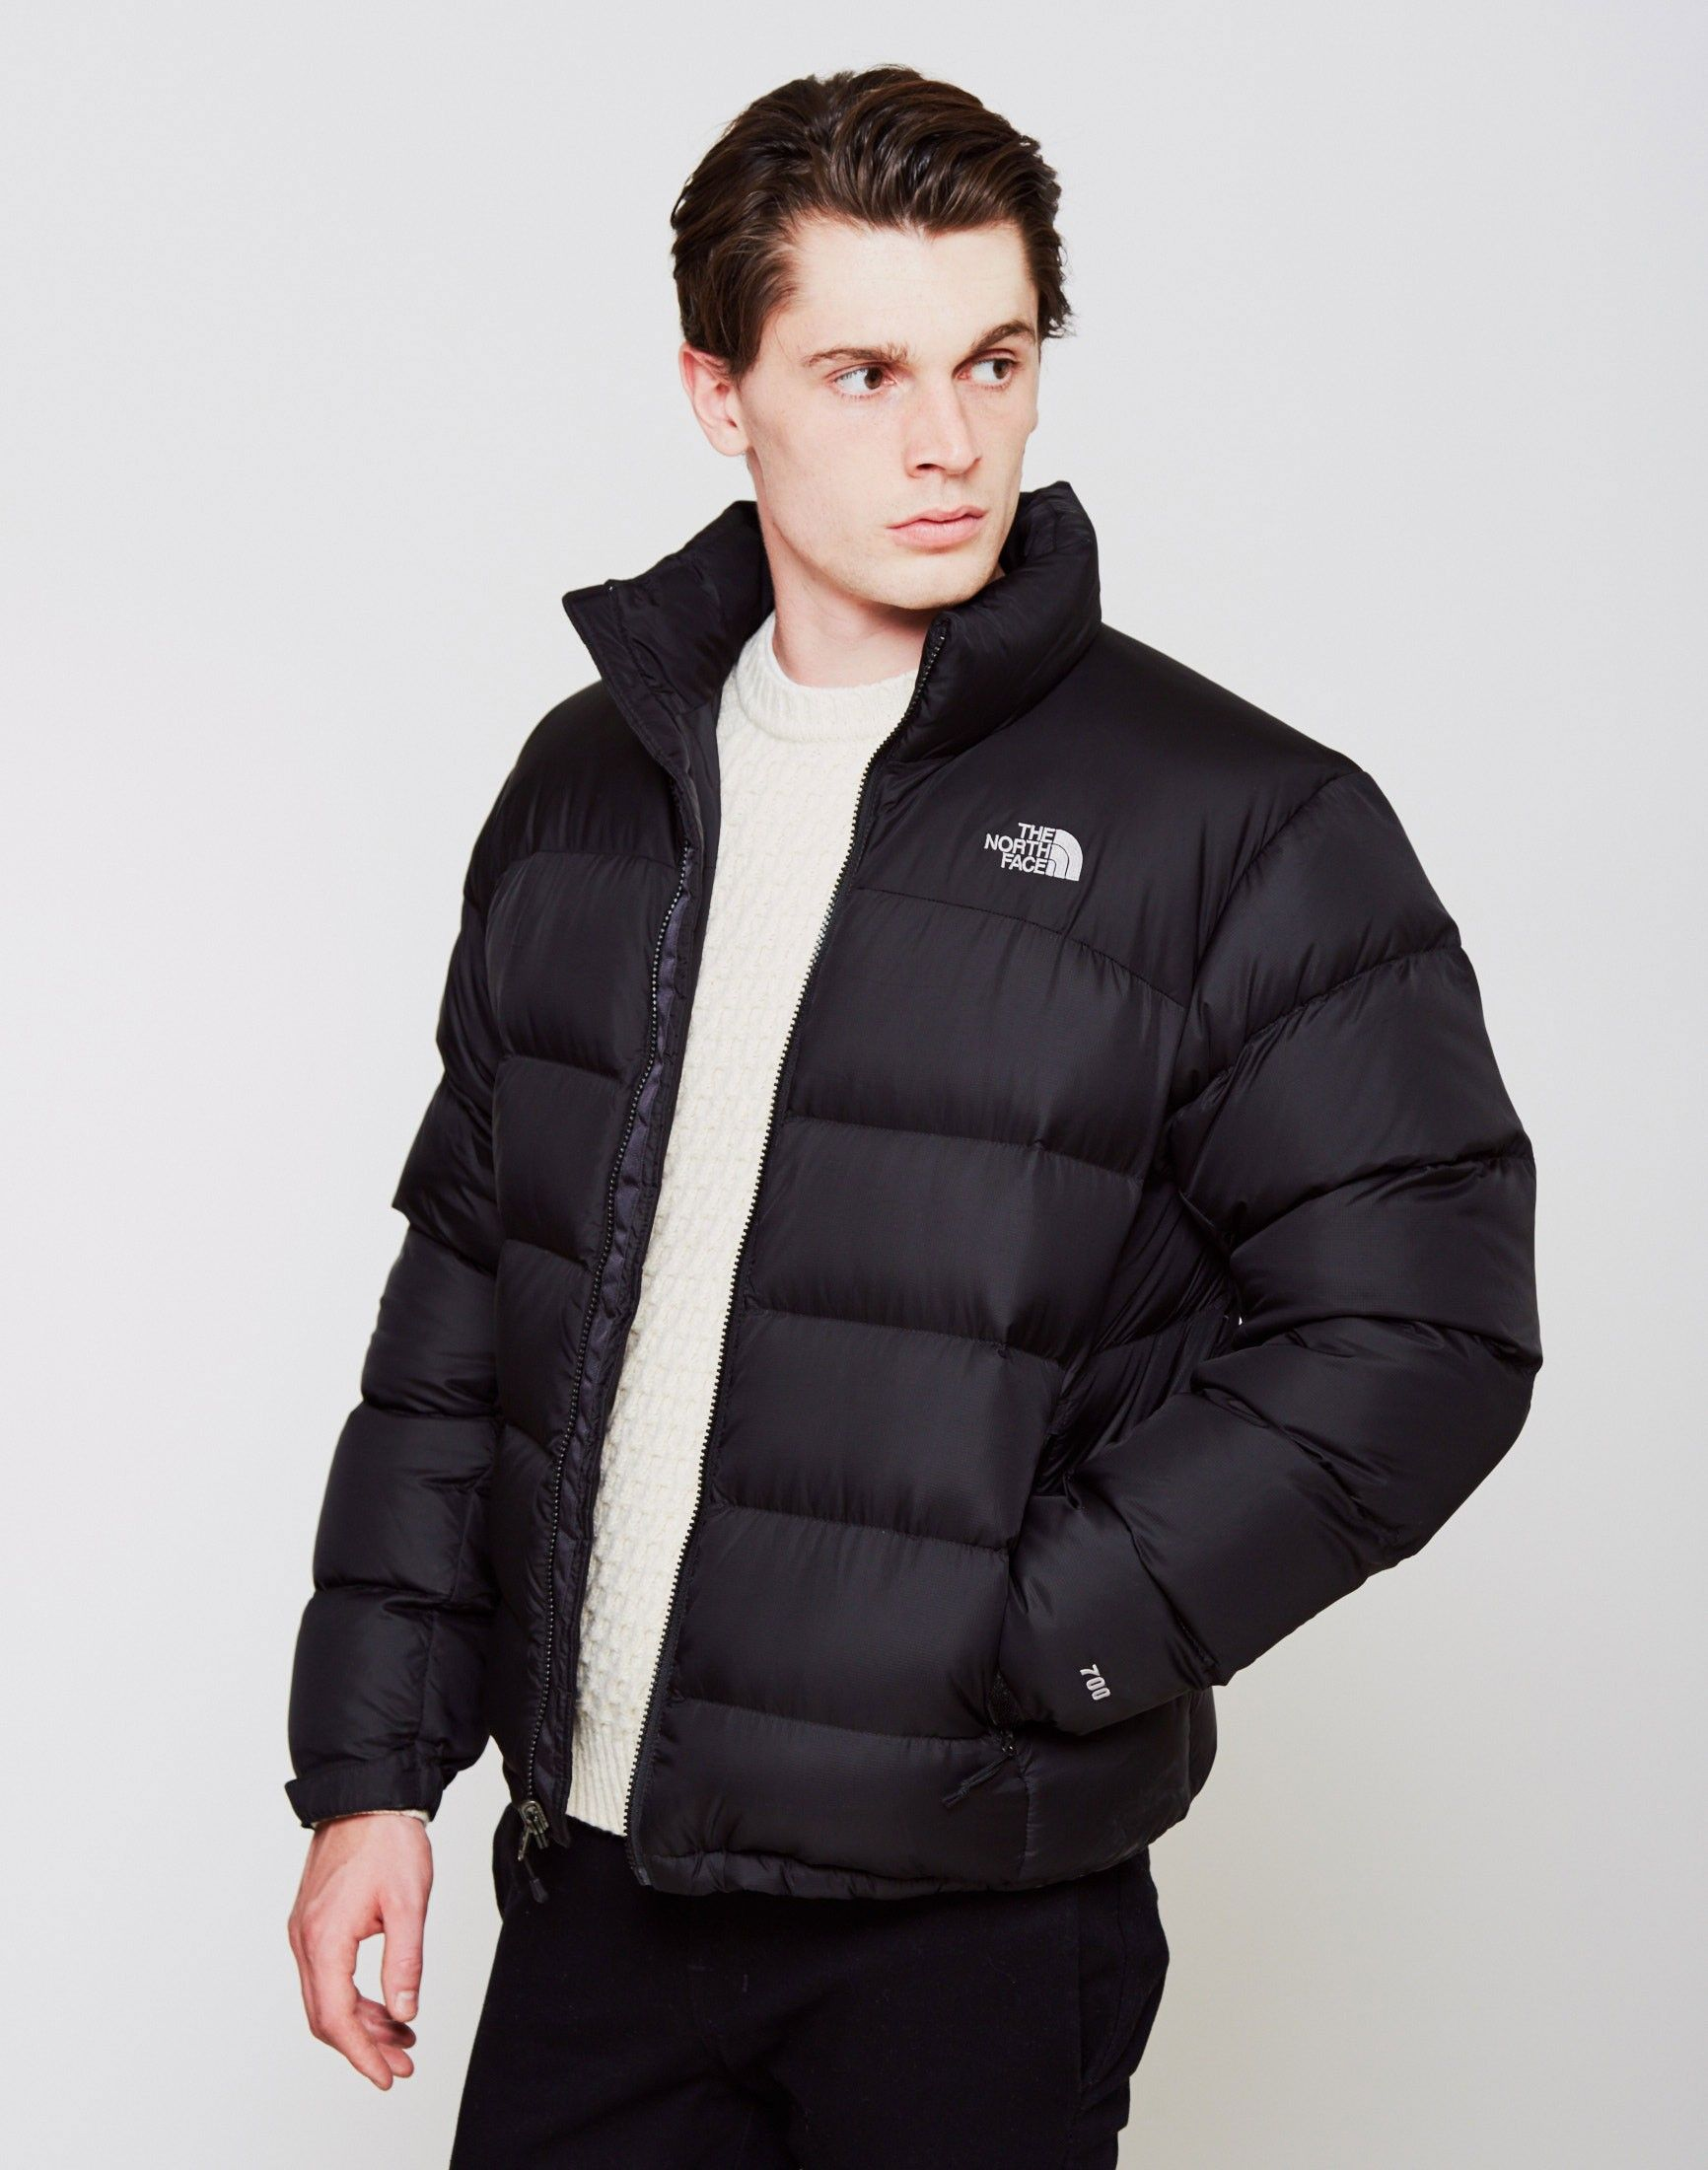 339ab4dde751 The North Face Nuptse 2 Jacket